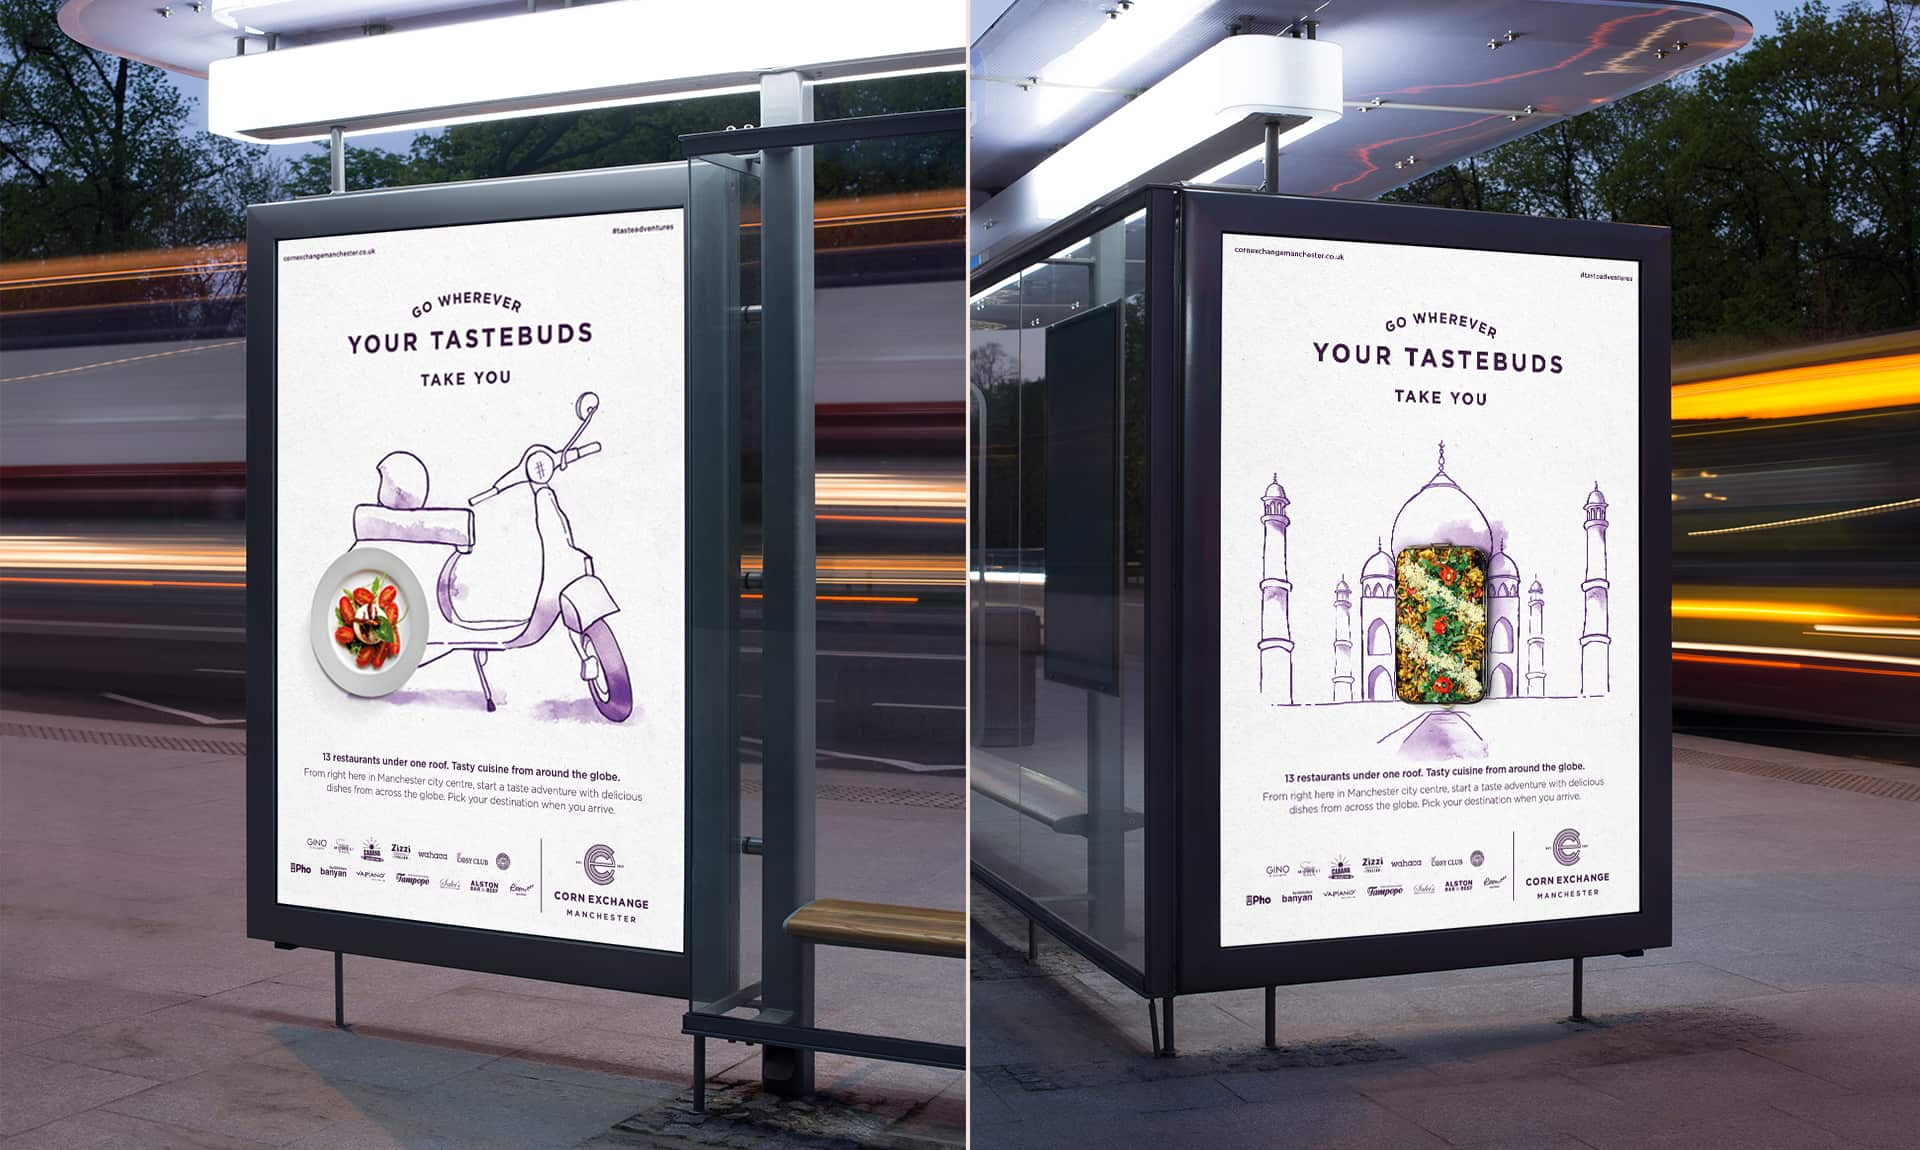 Integrated advertising campaign for Corn Exchange Manchester out of home advertising